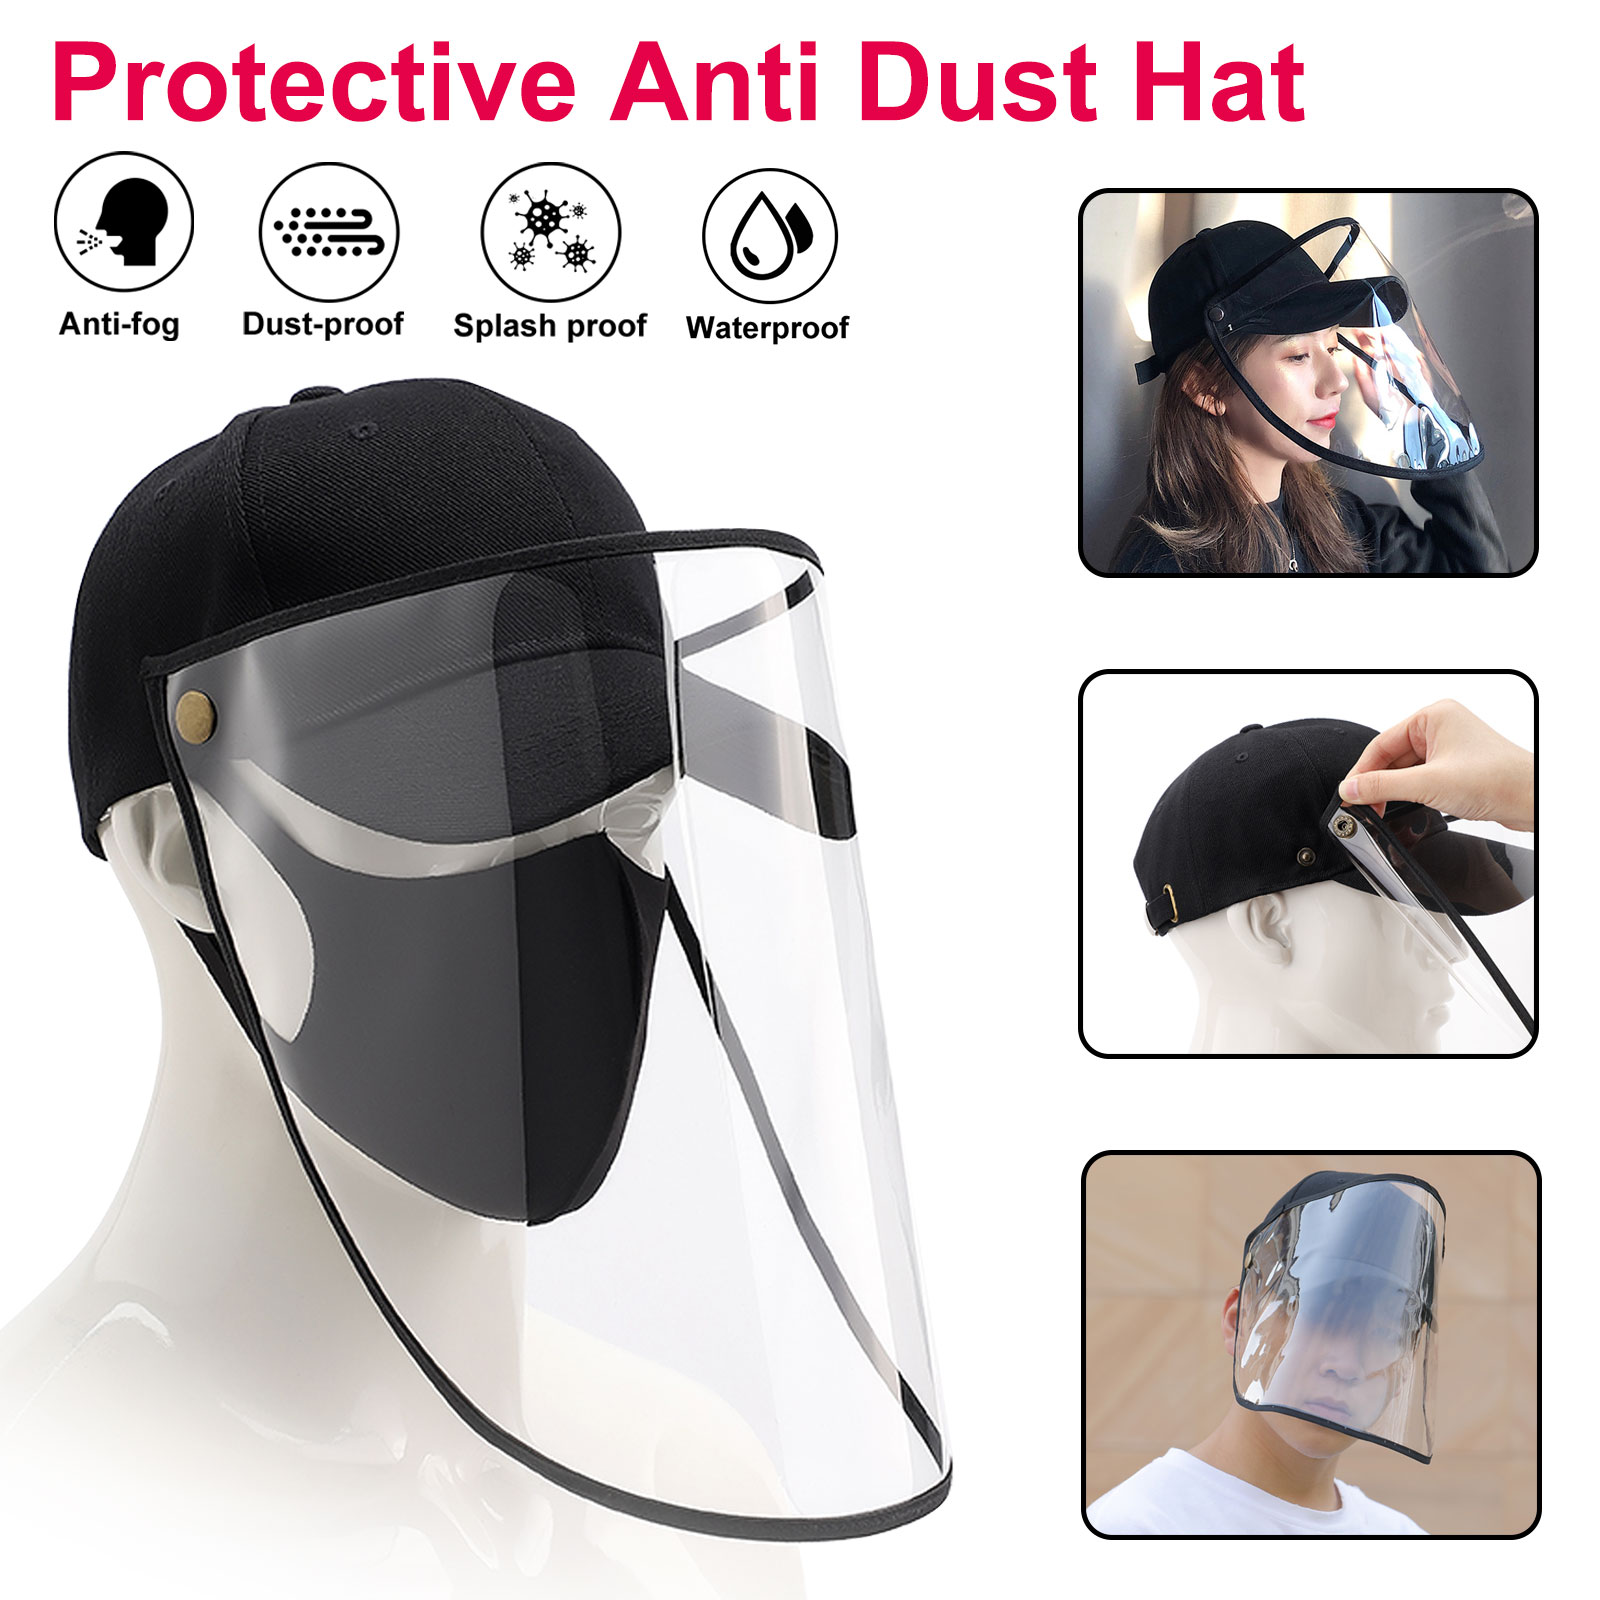 Outdoor Unisex Anti Fog Dustproof Plastic Safety Shield Face Cover Protectors